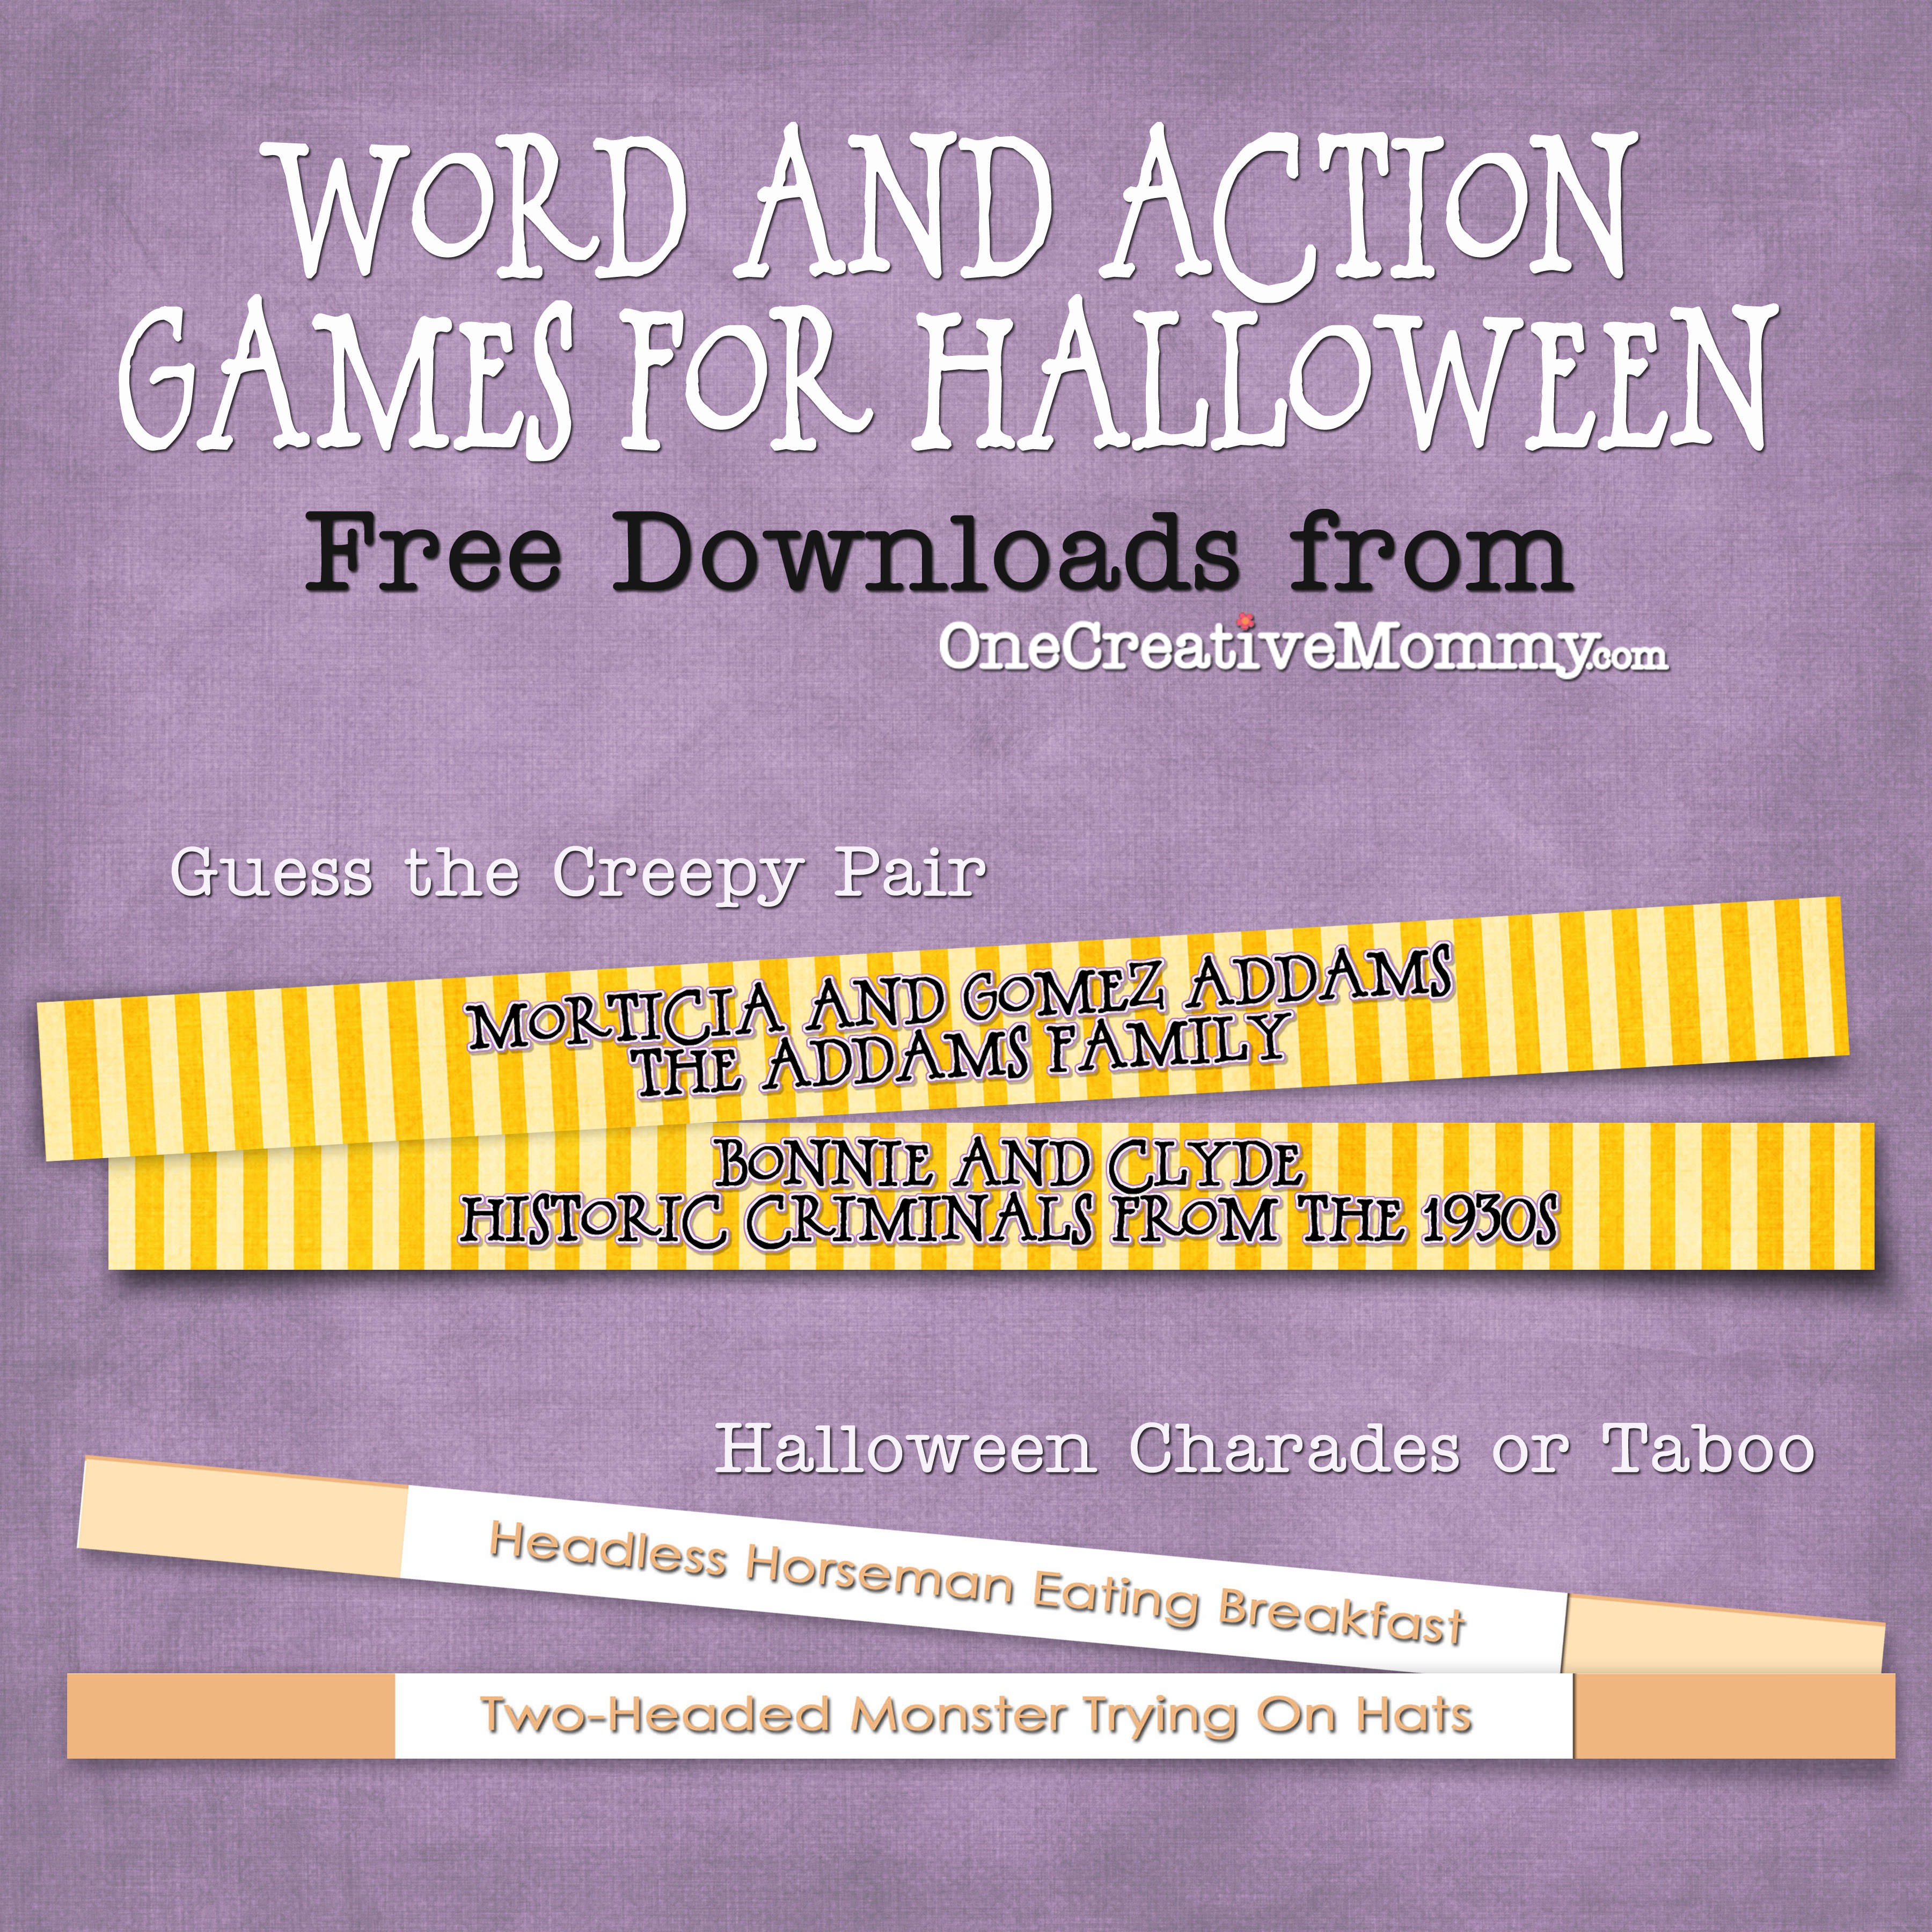 Halloween Party Games For Kids And Grownups, Too! - Onecreativemommy - Free Printable Halloween Party Games